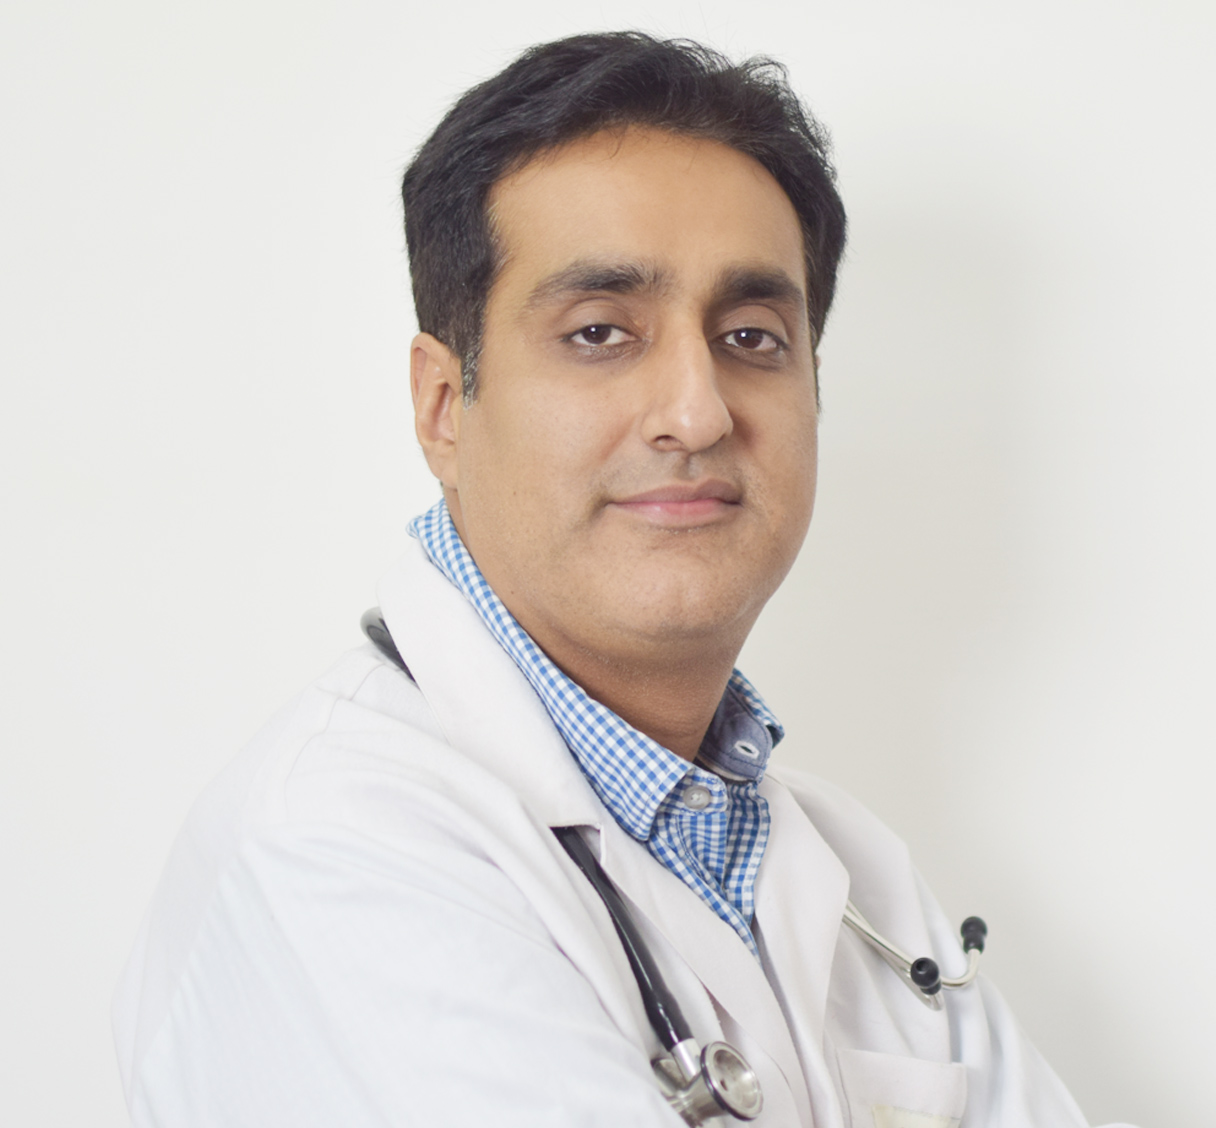 Dr. Raajit Chanana